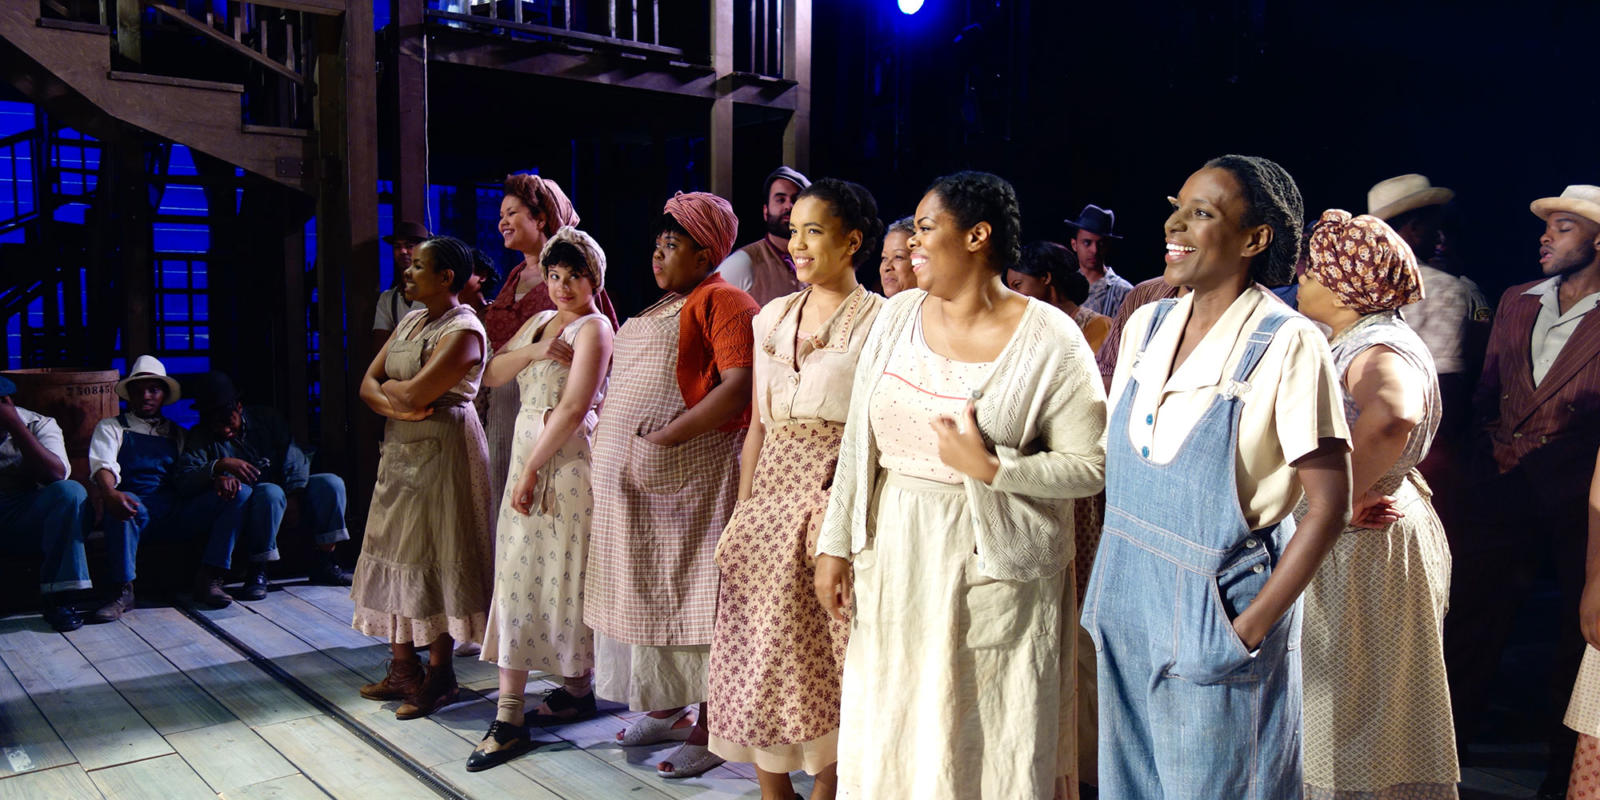 ENO Porgy and Bess: Nozuko Teto (Strawberry Woman), Simone Ibbett-Brown, Isabelle Peters, Fikile Mthethwa, Rachel Oyawale, Sarah-Jane Lewis (Annie) and Jordene Thomas on stage after the show